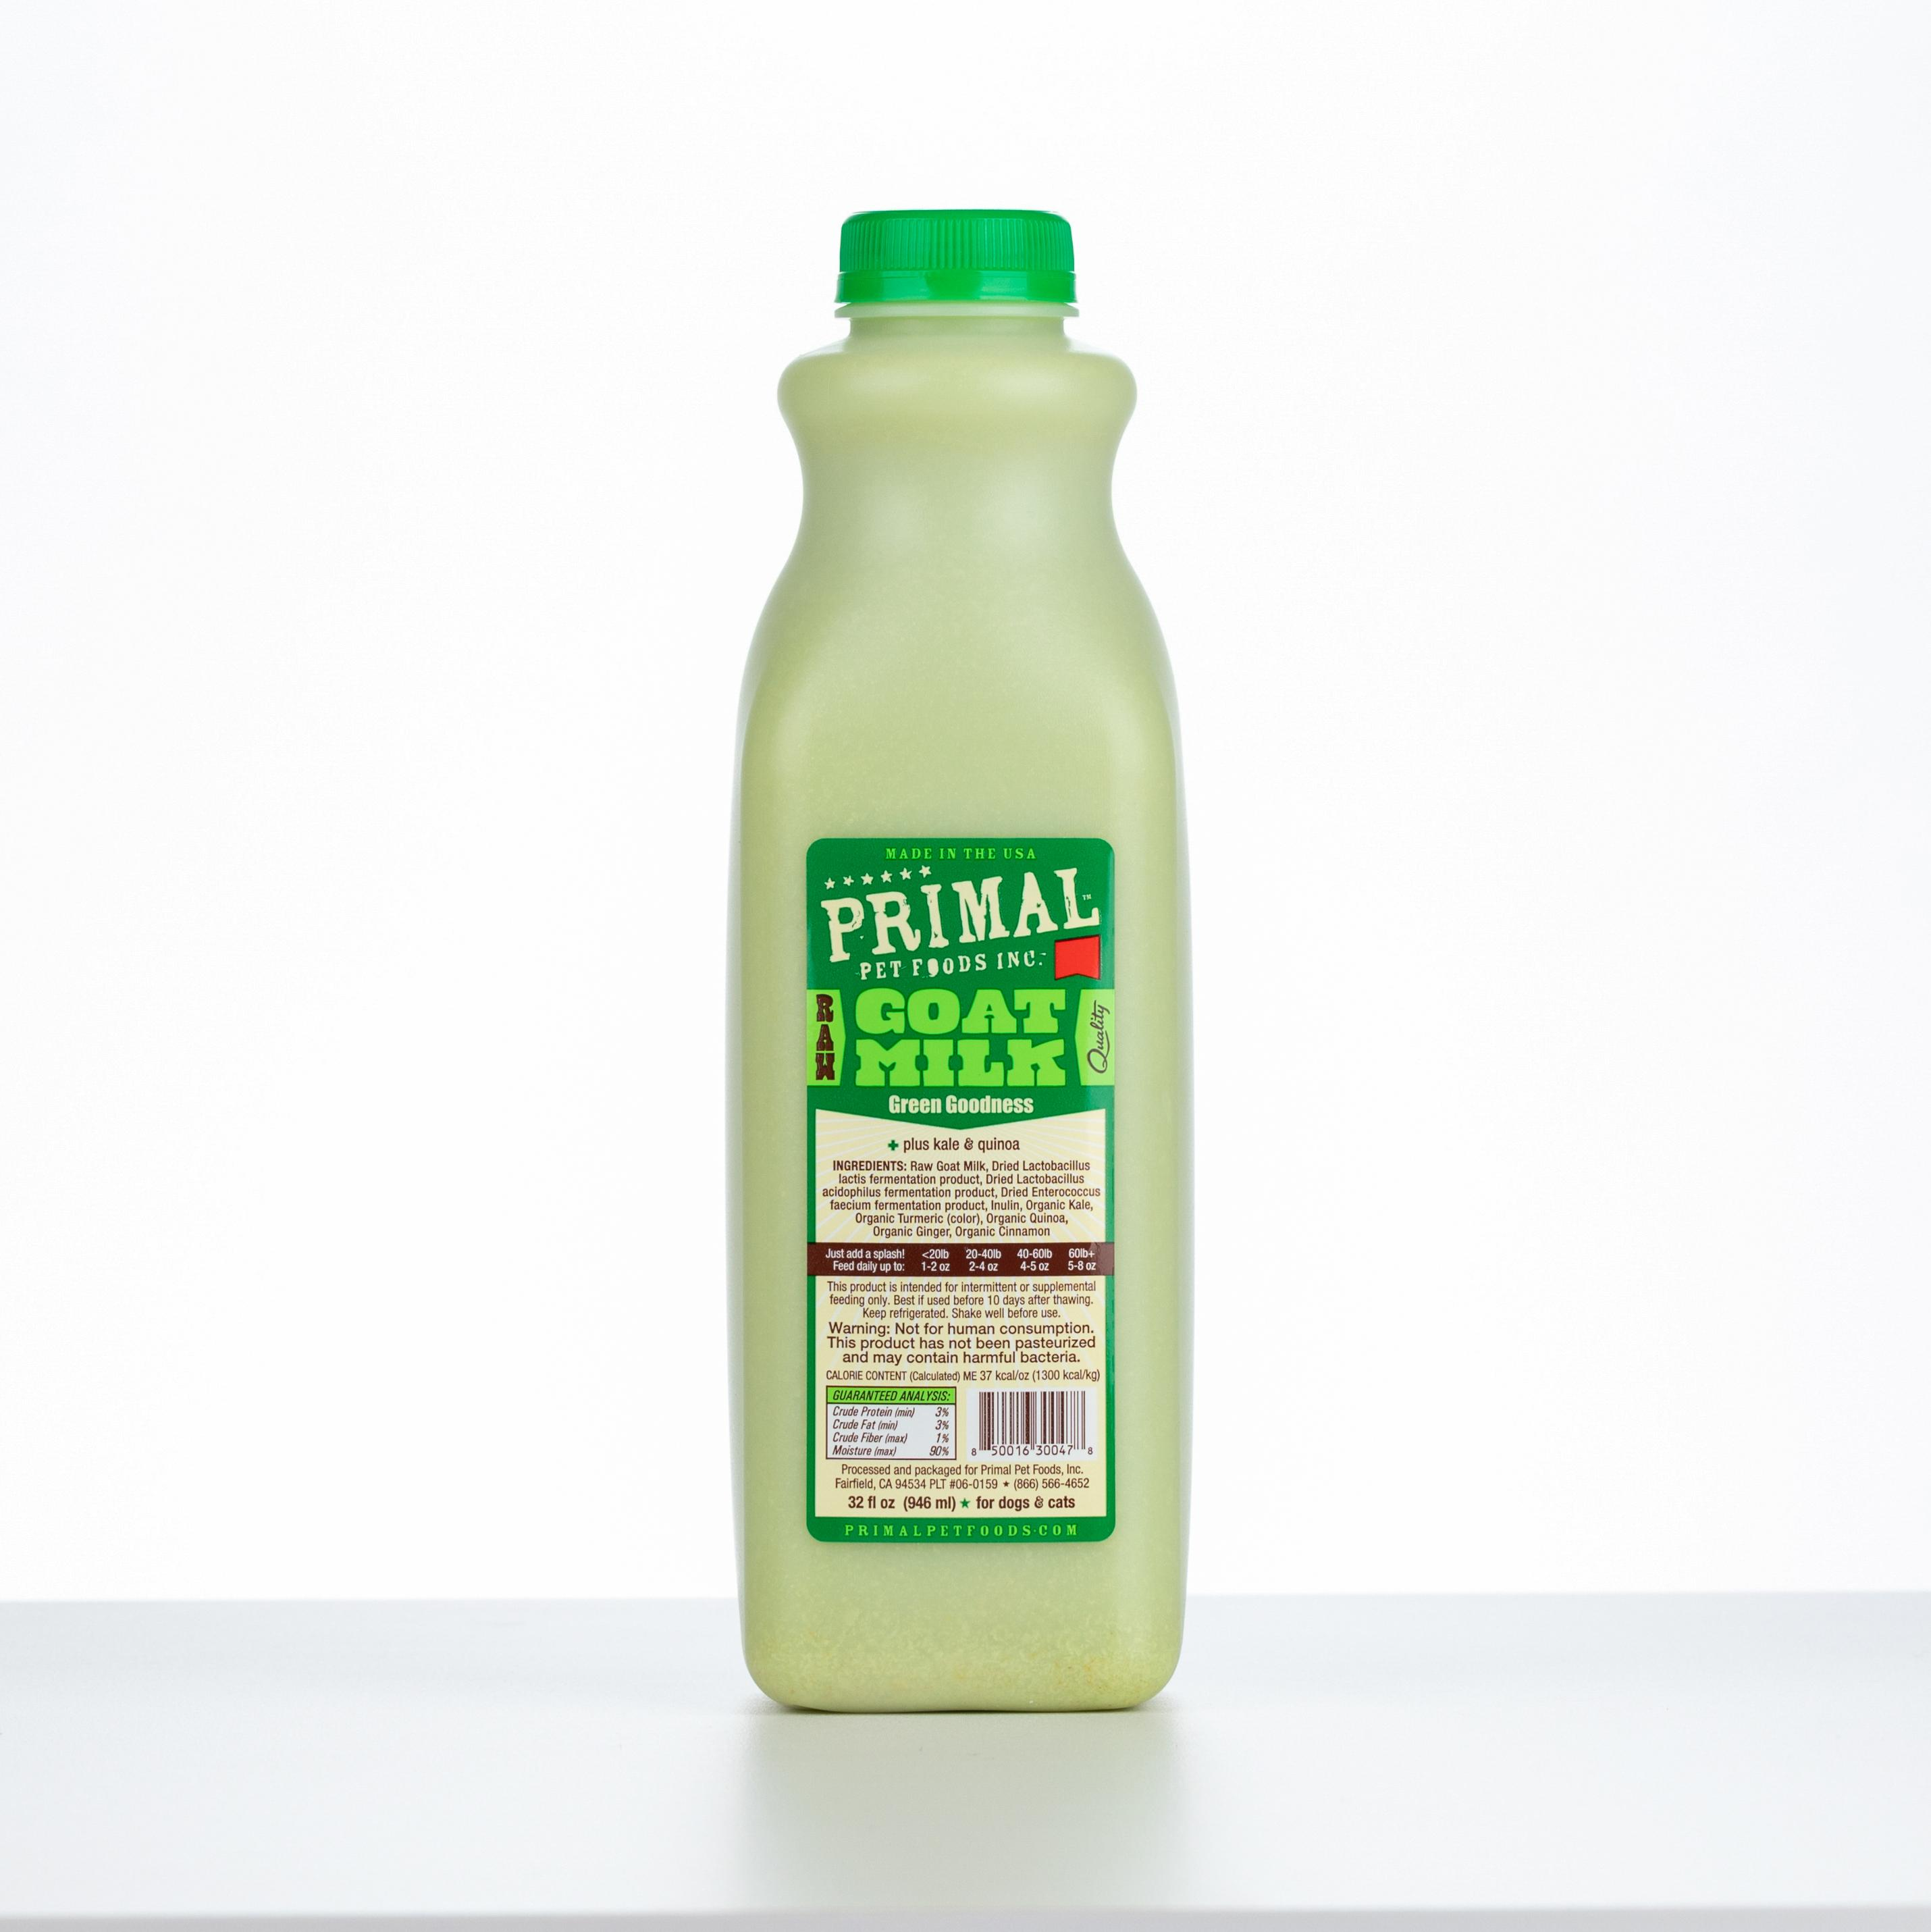 Primal Raw Frozen Goat Milk 'Green Goodness' for Dogs & Cats, 32-oz